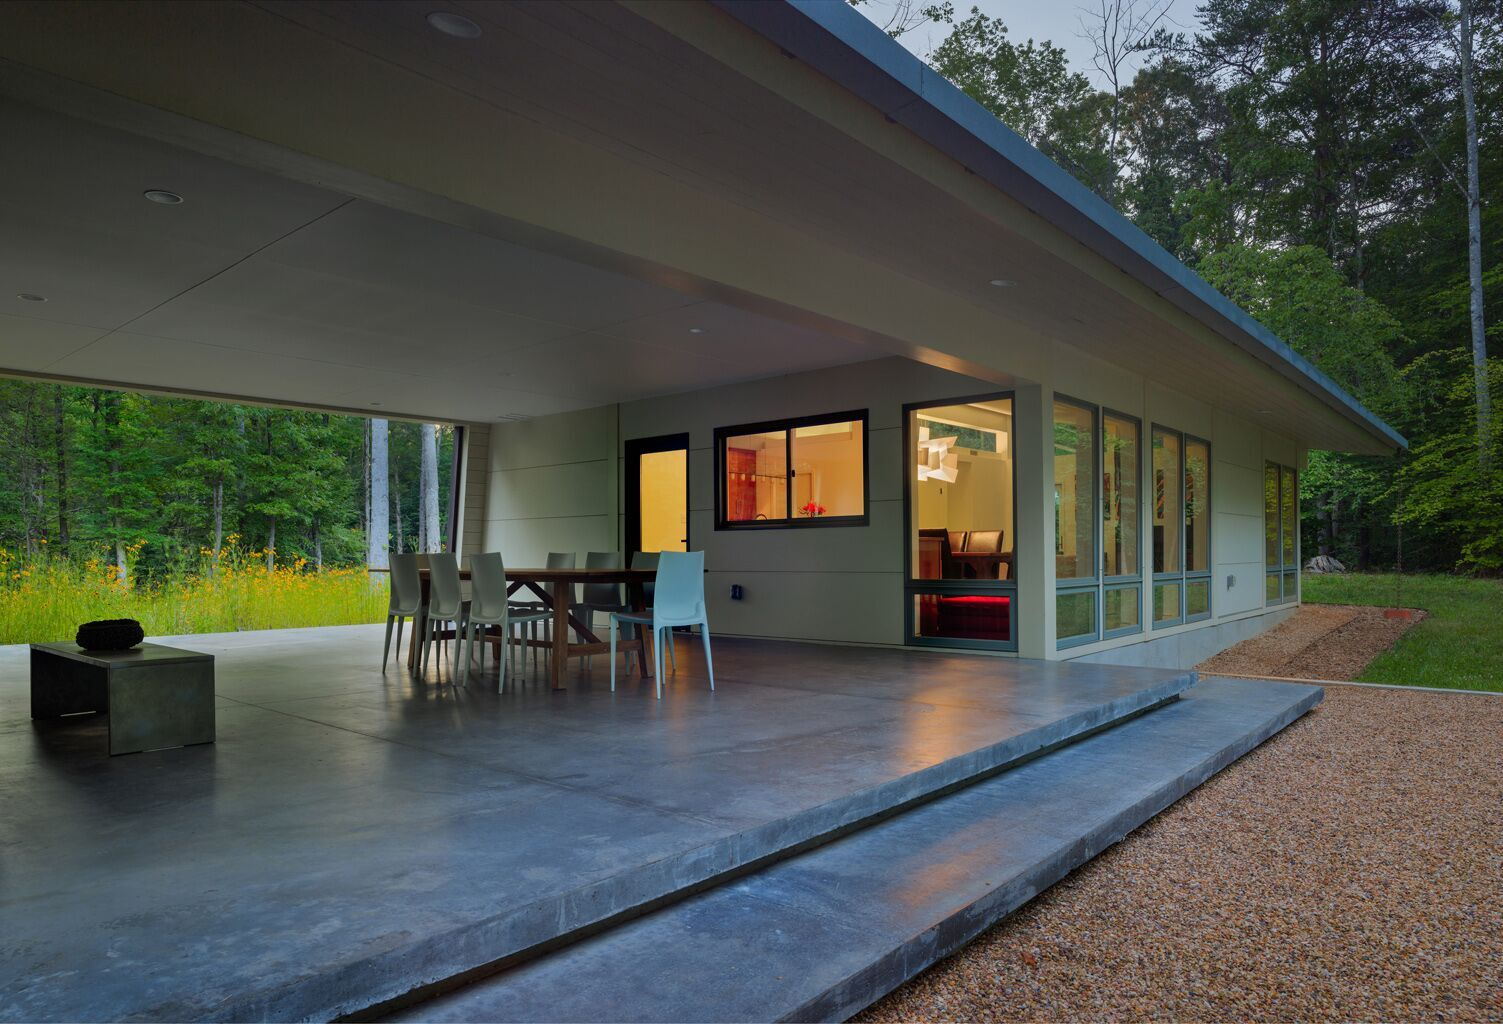 An Updated Dogtrot In Charlottesville Architects And Artisansarchitects And Artisans